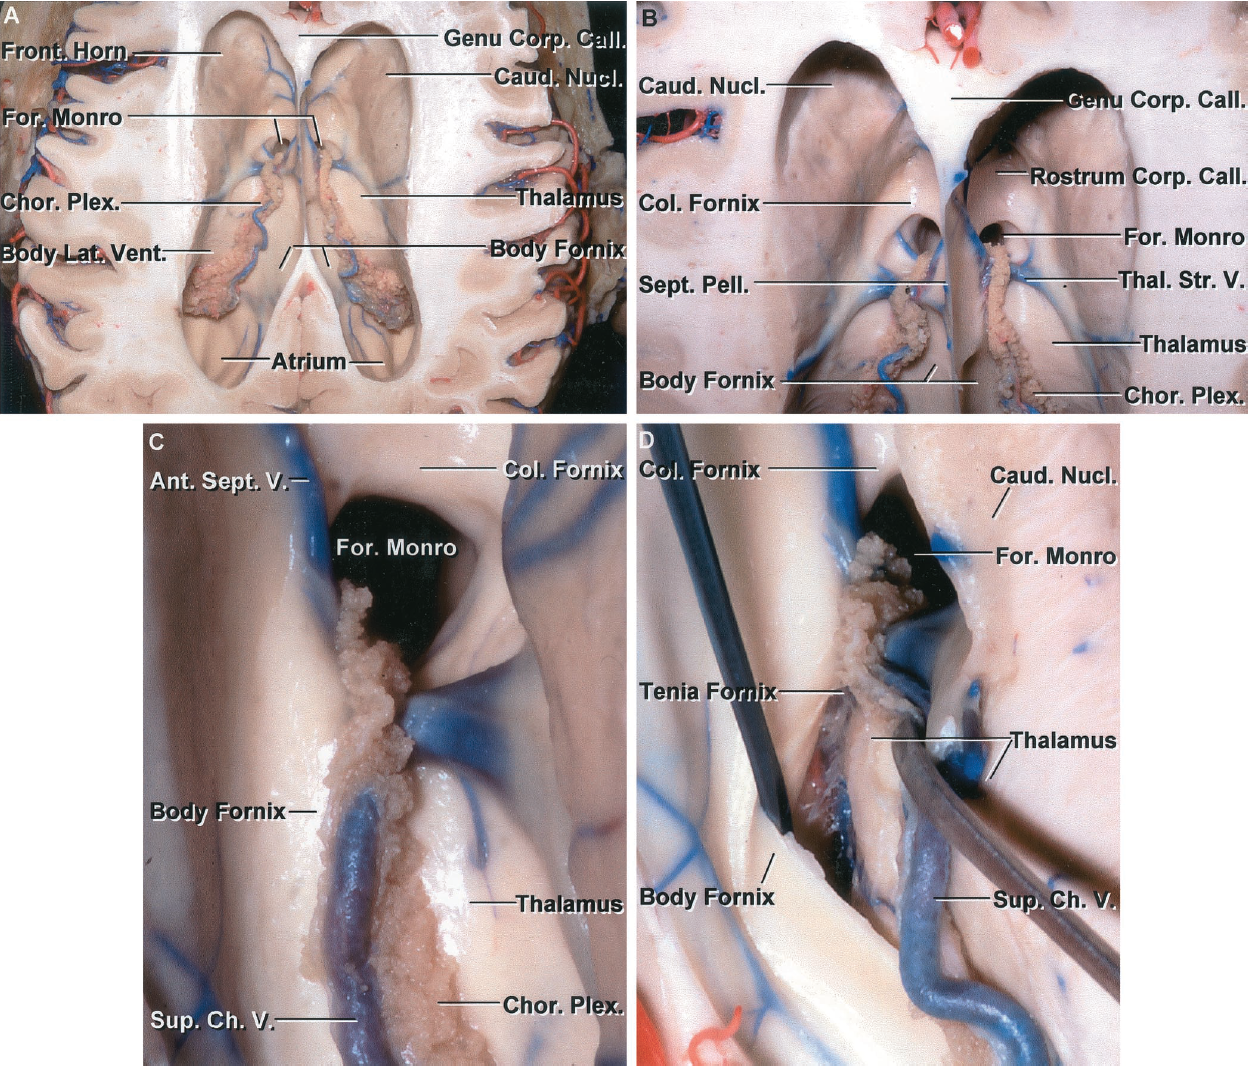 FIGURE 5.6. A-D. Stepwise dissection of the choroidal fissure. A, superior view of the lateral ventricles. The choroidal fissure is the cleft between the fornix and the thalamus along which the choroid plexus is attached. The frontal horn is located anterior and the ventricular body behind the foramen of Monro. The thalamus forms the floor of the body of the lateral ventricle and the anterior wall of the atrium. B, enlarged view. The columns of the fornix form the anterior and superior margins of the foramen of Monro. The choroid plexus in the body extends through the posterior margin of the foramen of Monro and is continuous with the choroid plexus in the roof of the third ventricle. The right thalamostriate vein passes through the posterior edge of the foramen of Monro and the left thalamostriate vein passes through the choroidal fissure behind the foramen. The floor of the frontal horn is formed by the rostrum, and the anterior wall is formed by the genu of the corpus callosum. The lateral wall is formed by the caudate nucleus. The septum pellucidum is attached to the upper edge of the body of the fornix. C, enlarged view of the foramen of Monro. The columns of the fornix form the anterior and superior margins of the foramen. An anterior septal vein passes backward along the septum pellucidum and crosses the column of the fornix. The thalamostriate vein passes forward between the caudate nucleus and thalamus and turns medially to pass through the posterior margin of the foramen of Monro to empty into the internal cerebral vein. The choroid plexus is attached medially by the tenia fornix to the body of the fornix and laterally by the tenia thalami to the thalamus. D, the transchoroidal exposure is begun by dividing the tenia fornix that attaches the choroid plexus to the margin of the fornix. The tenia thalami that attaches the choroid plexus to the thalamus is not opened.